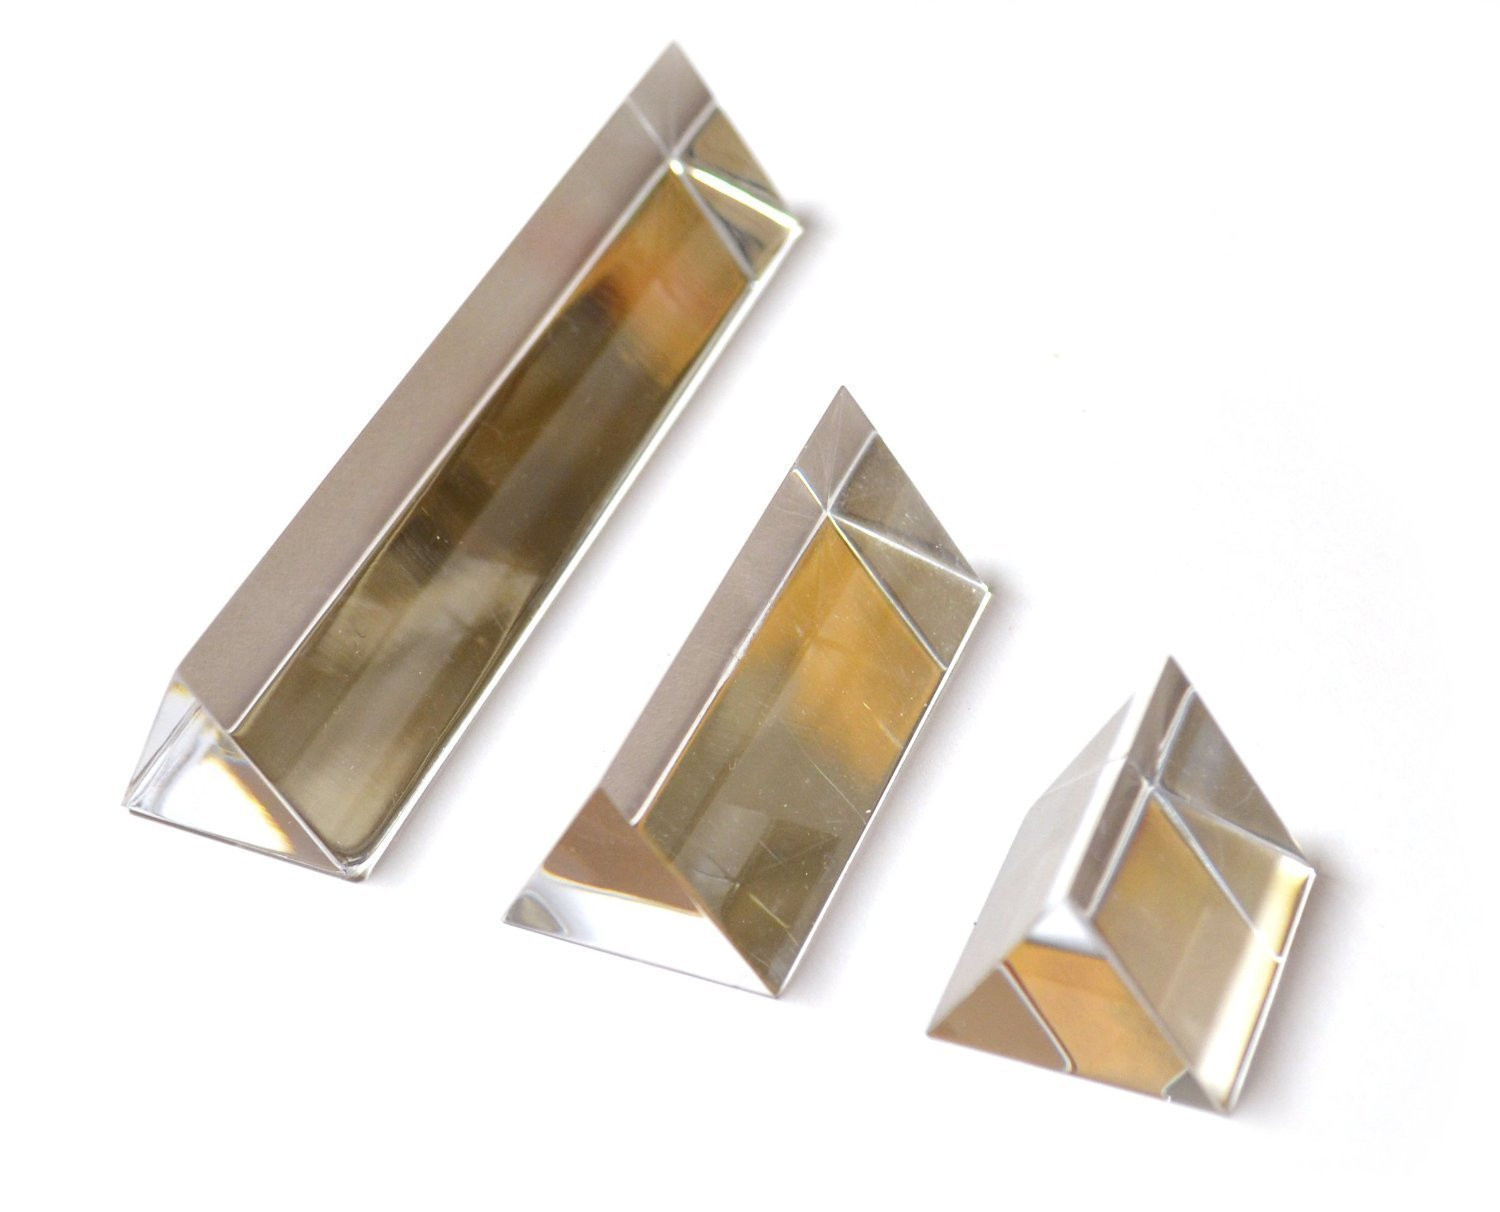 Eisco Labs Equilateral Acrylic Prisms With 1 inch Sides, Set of 3 Prisms - 1 Inch, 2 Inch, and 4 Inch Lengths